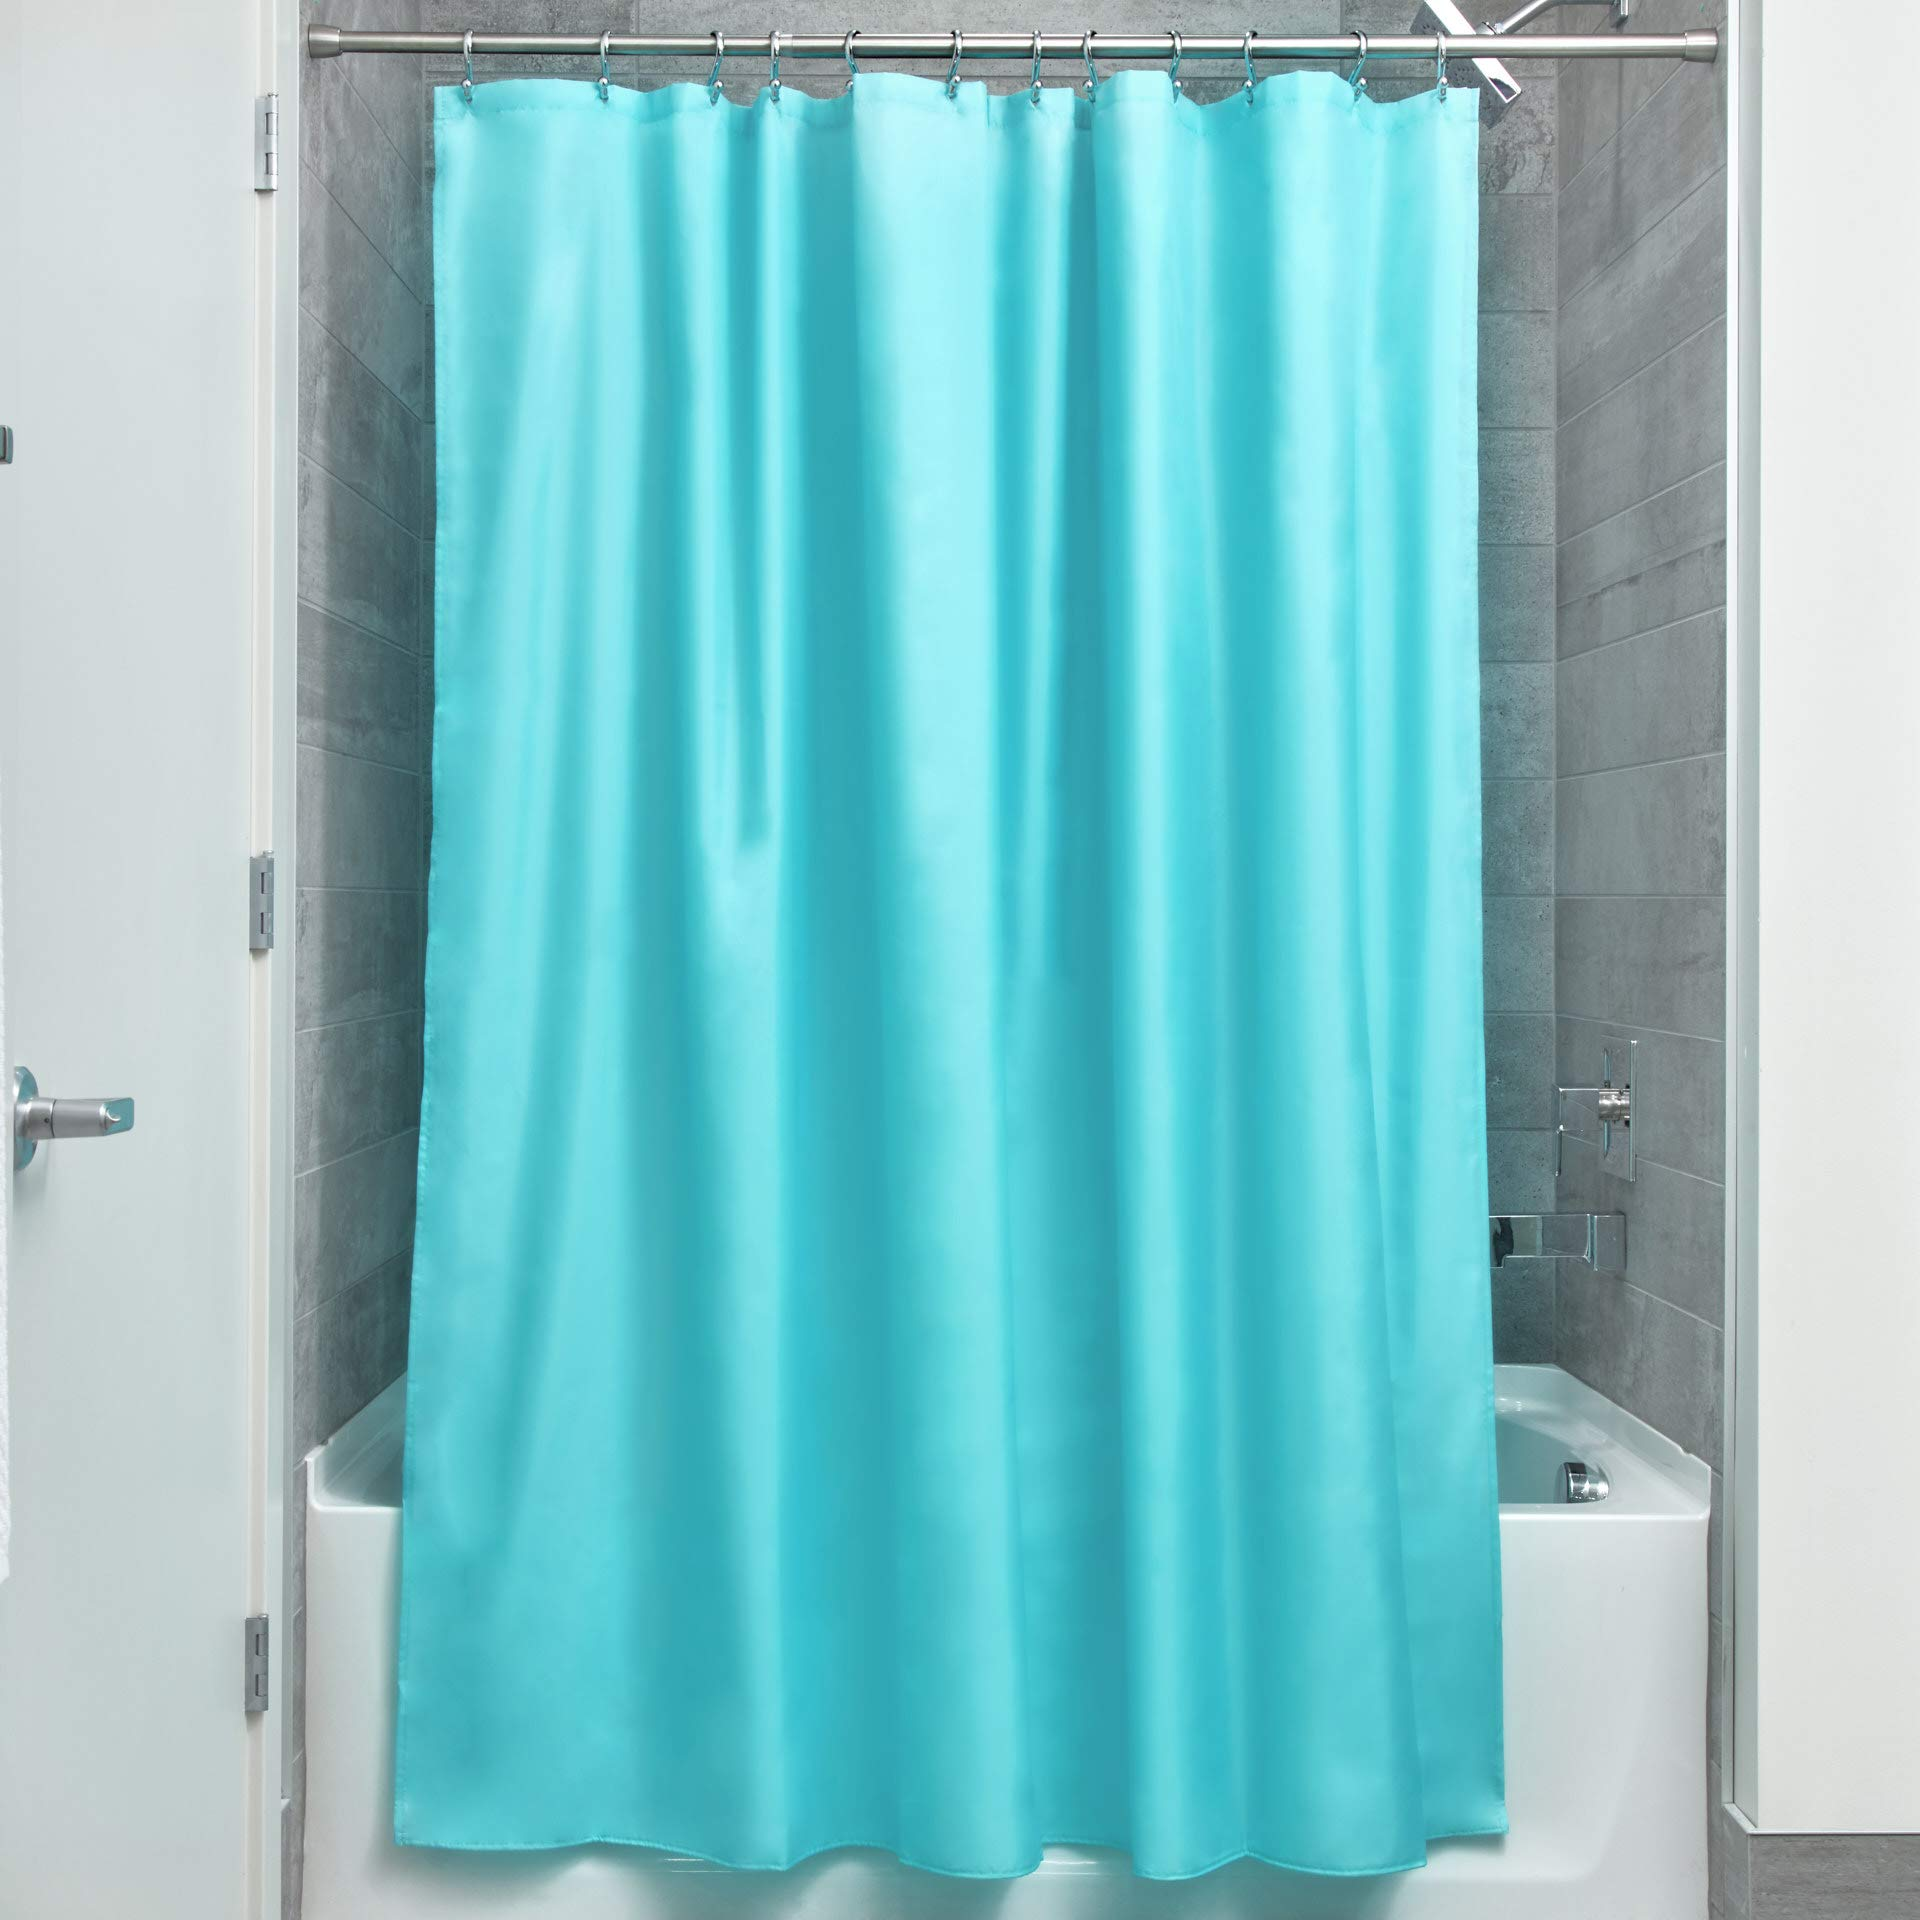 """iDesign Fabric Shower Curtain, Water-Repellent and Mold- and Mildew-Resistant Liner for Master, Guest, Kid's, College Dorm Bathroom, 72"""" x 72"""" - Aqua Blue"""